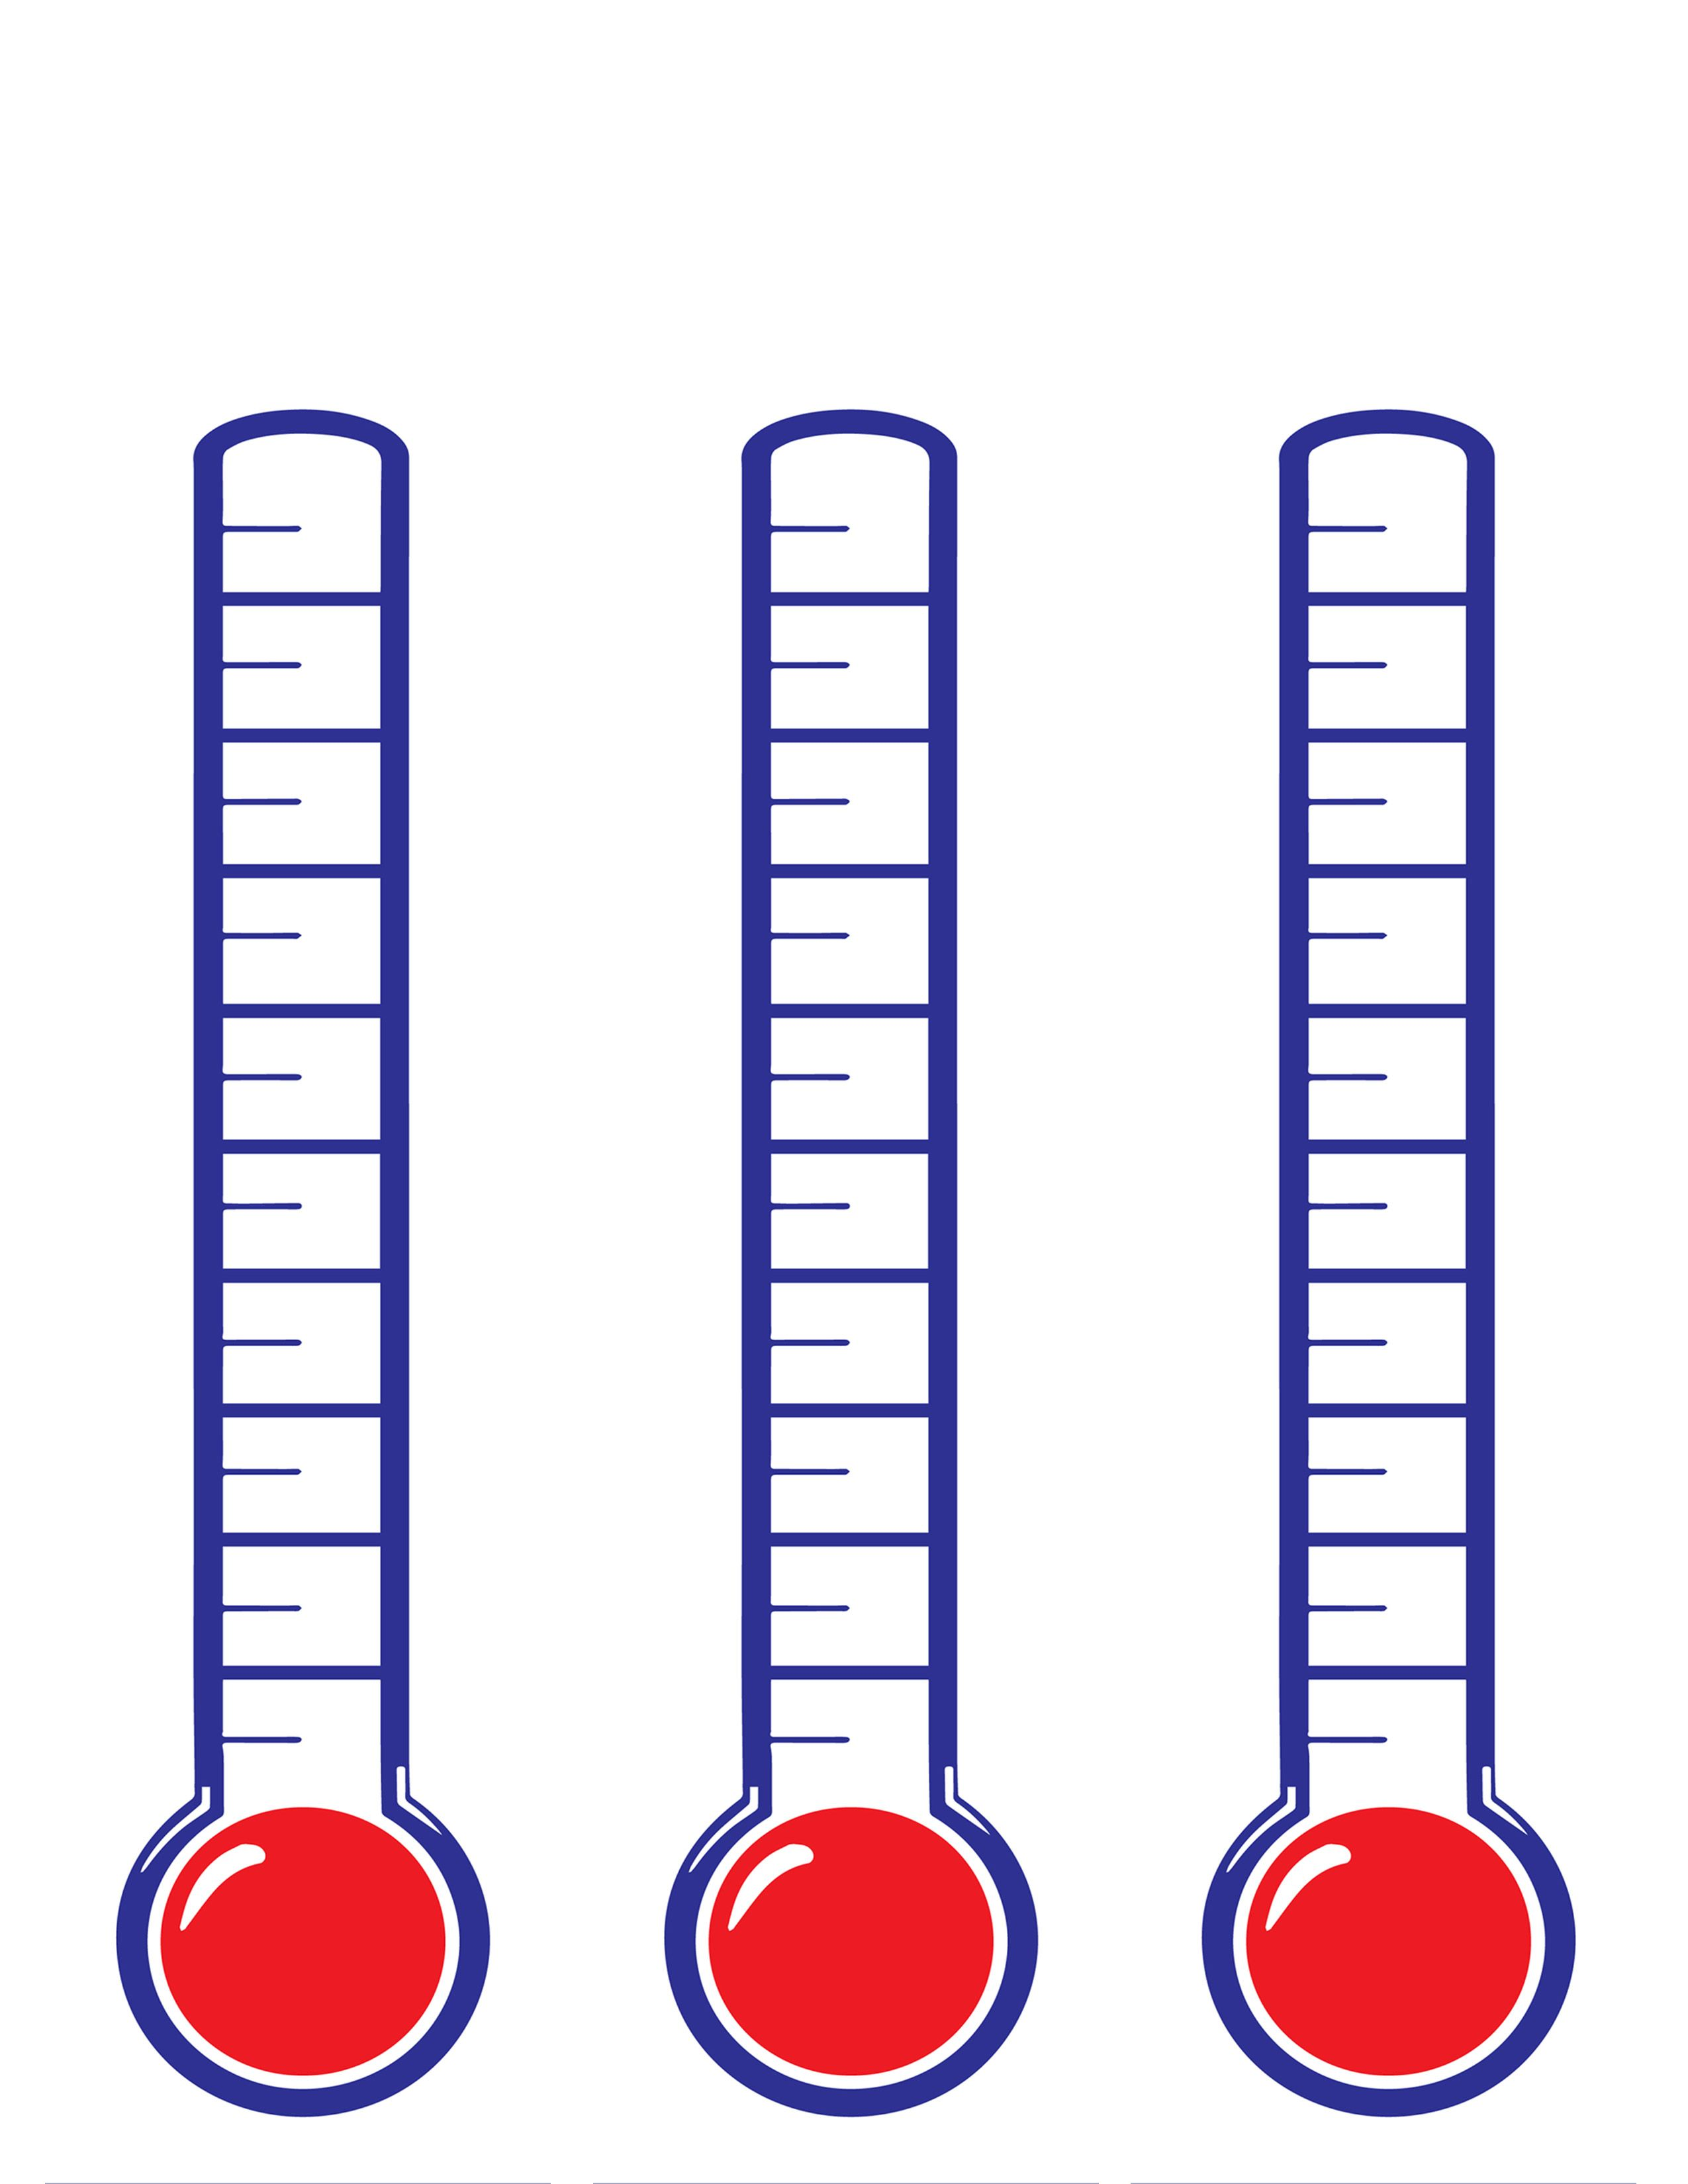 Thermometer clipart customizable. Custom triple fundraising thermometers